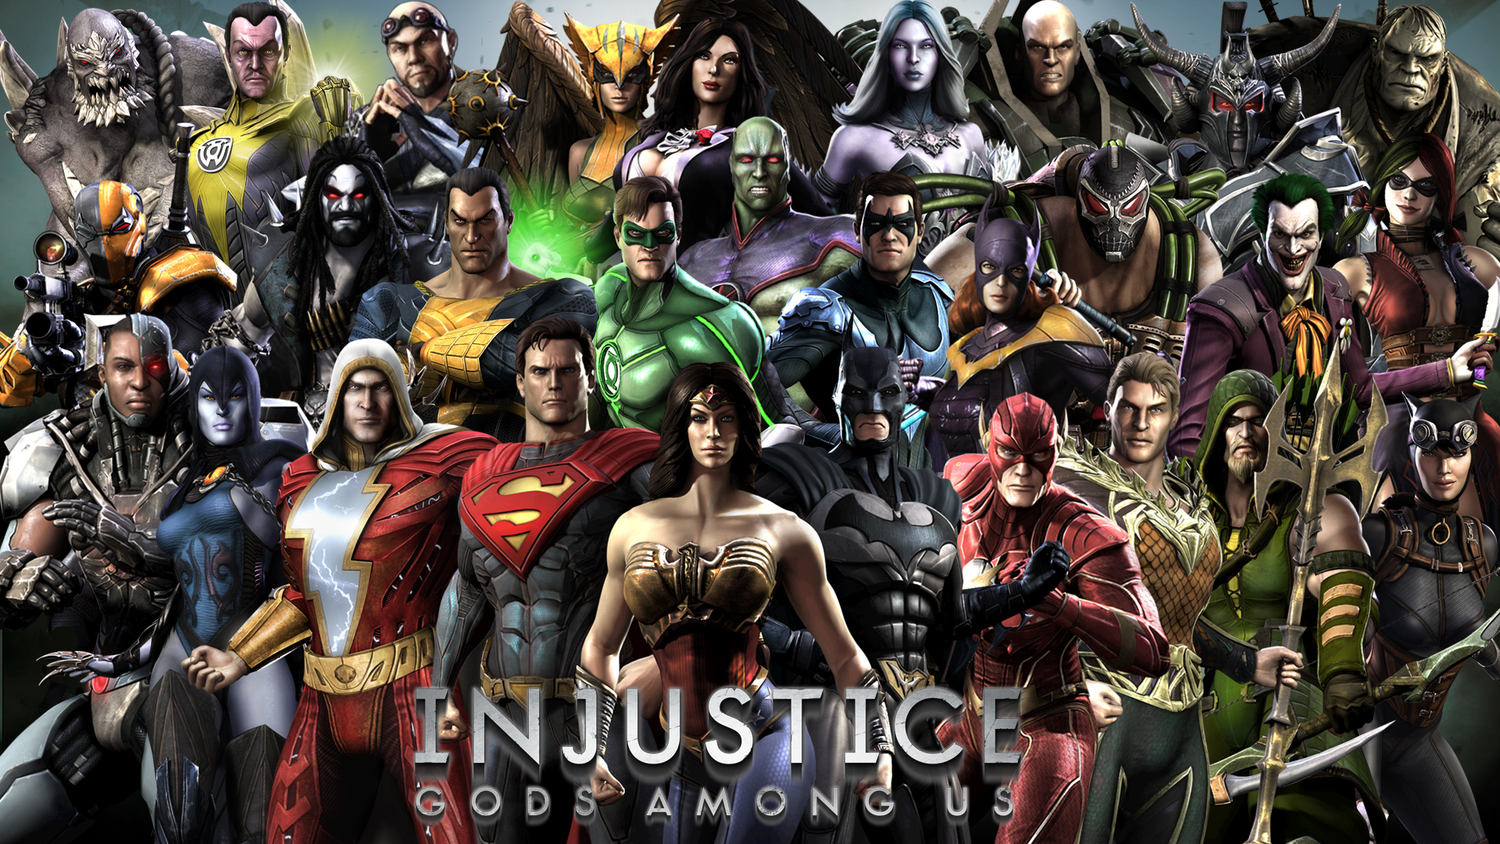 Injustice: Gods Among Us Ultimate Edition is free on Steam, PS4 and XBOX | Indie Game Bundles